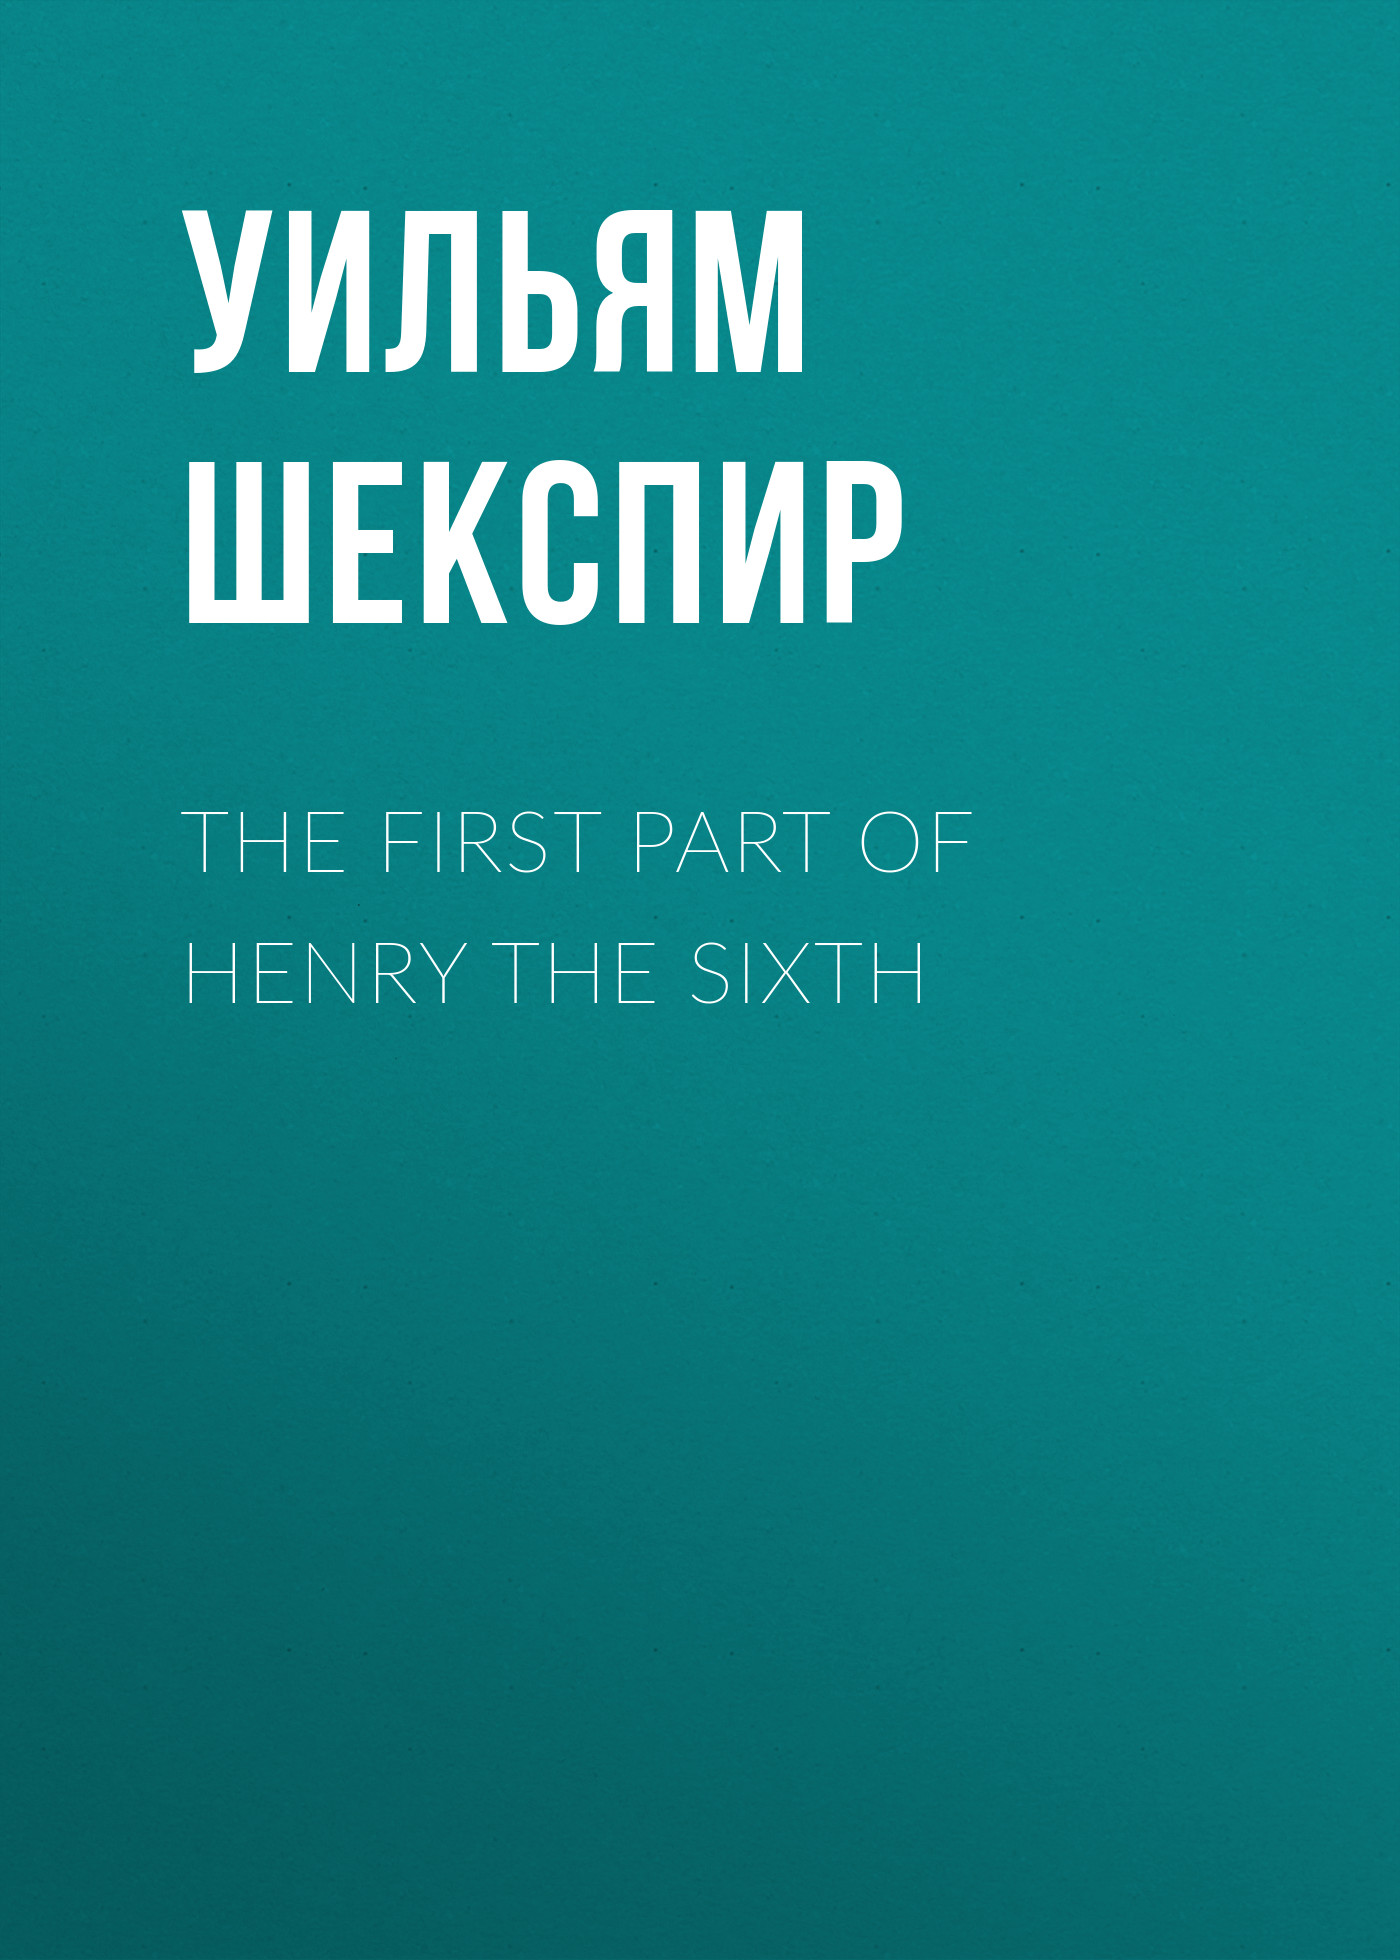 Уильям Шекспир The First Part of Henry the Sixth уильям шекспир king henry vi first part